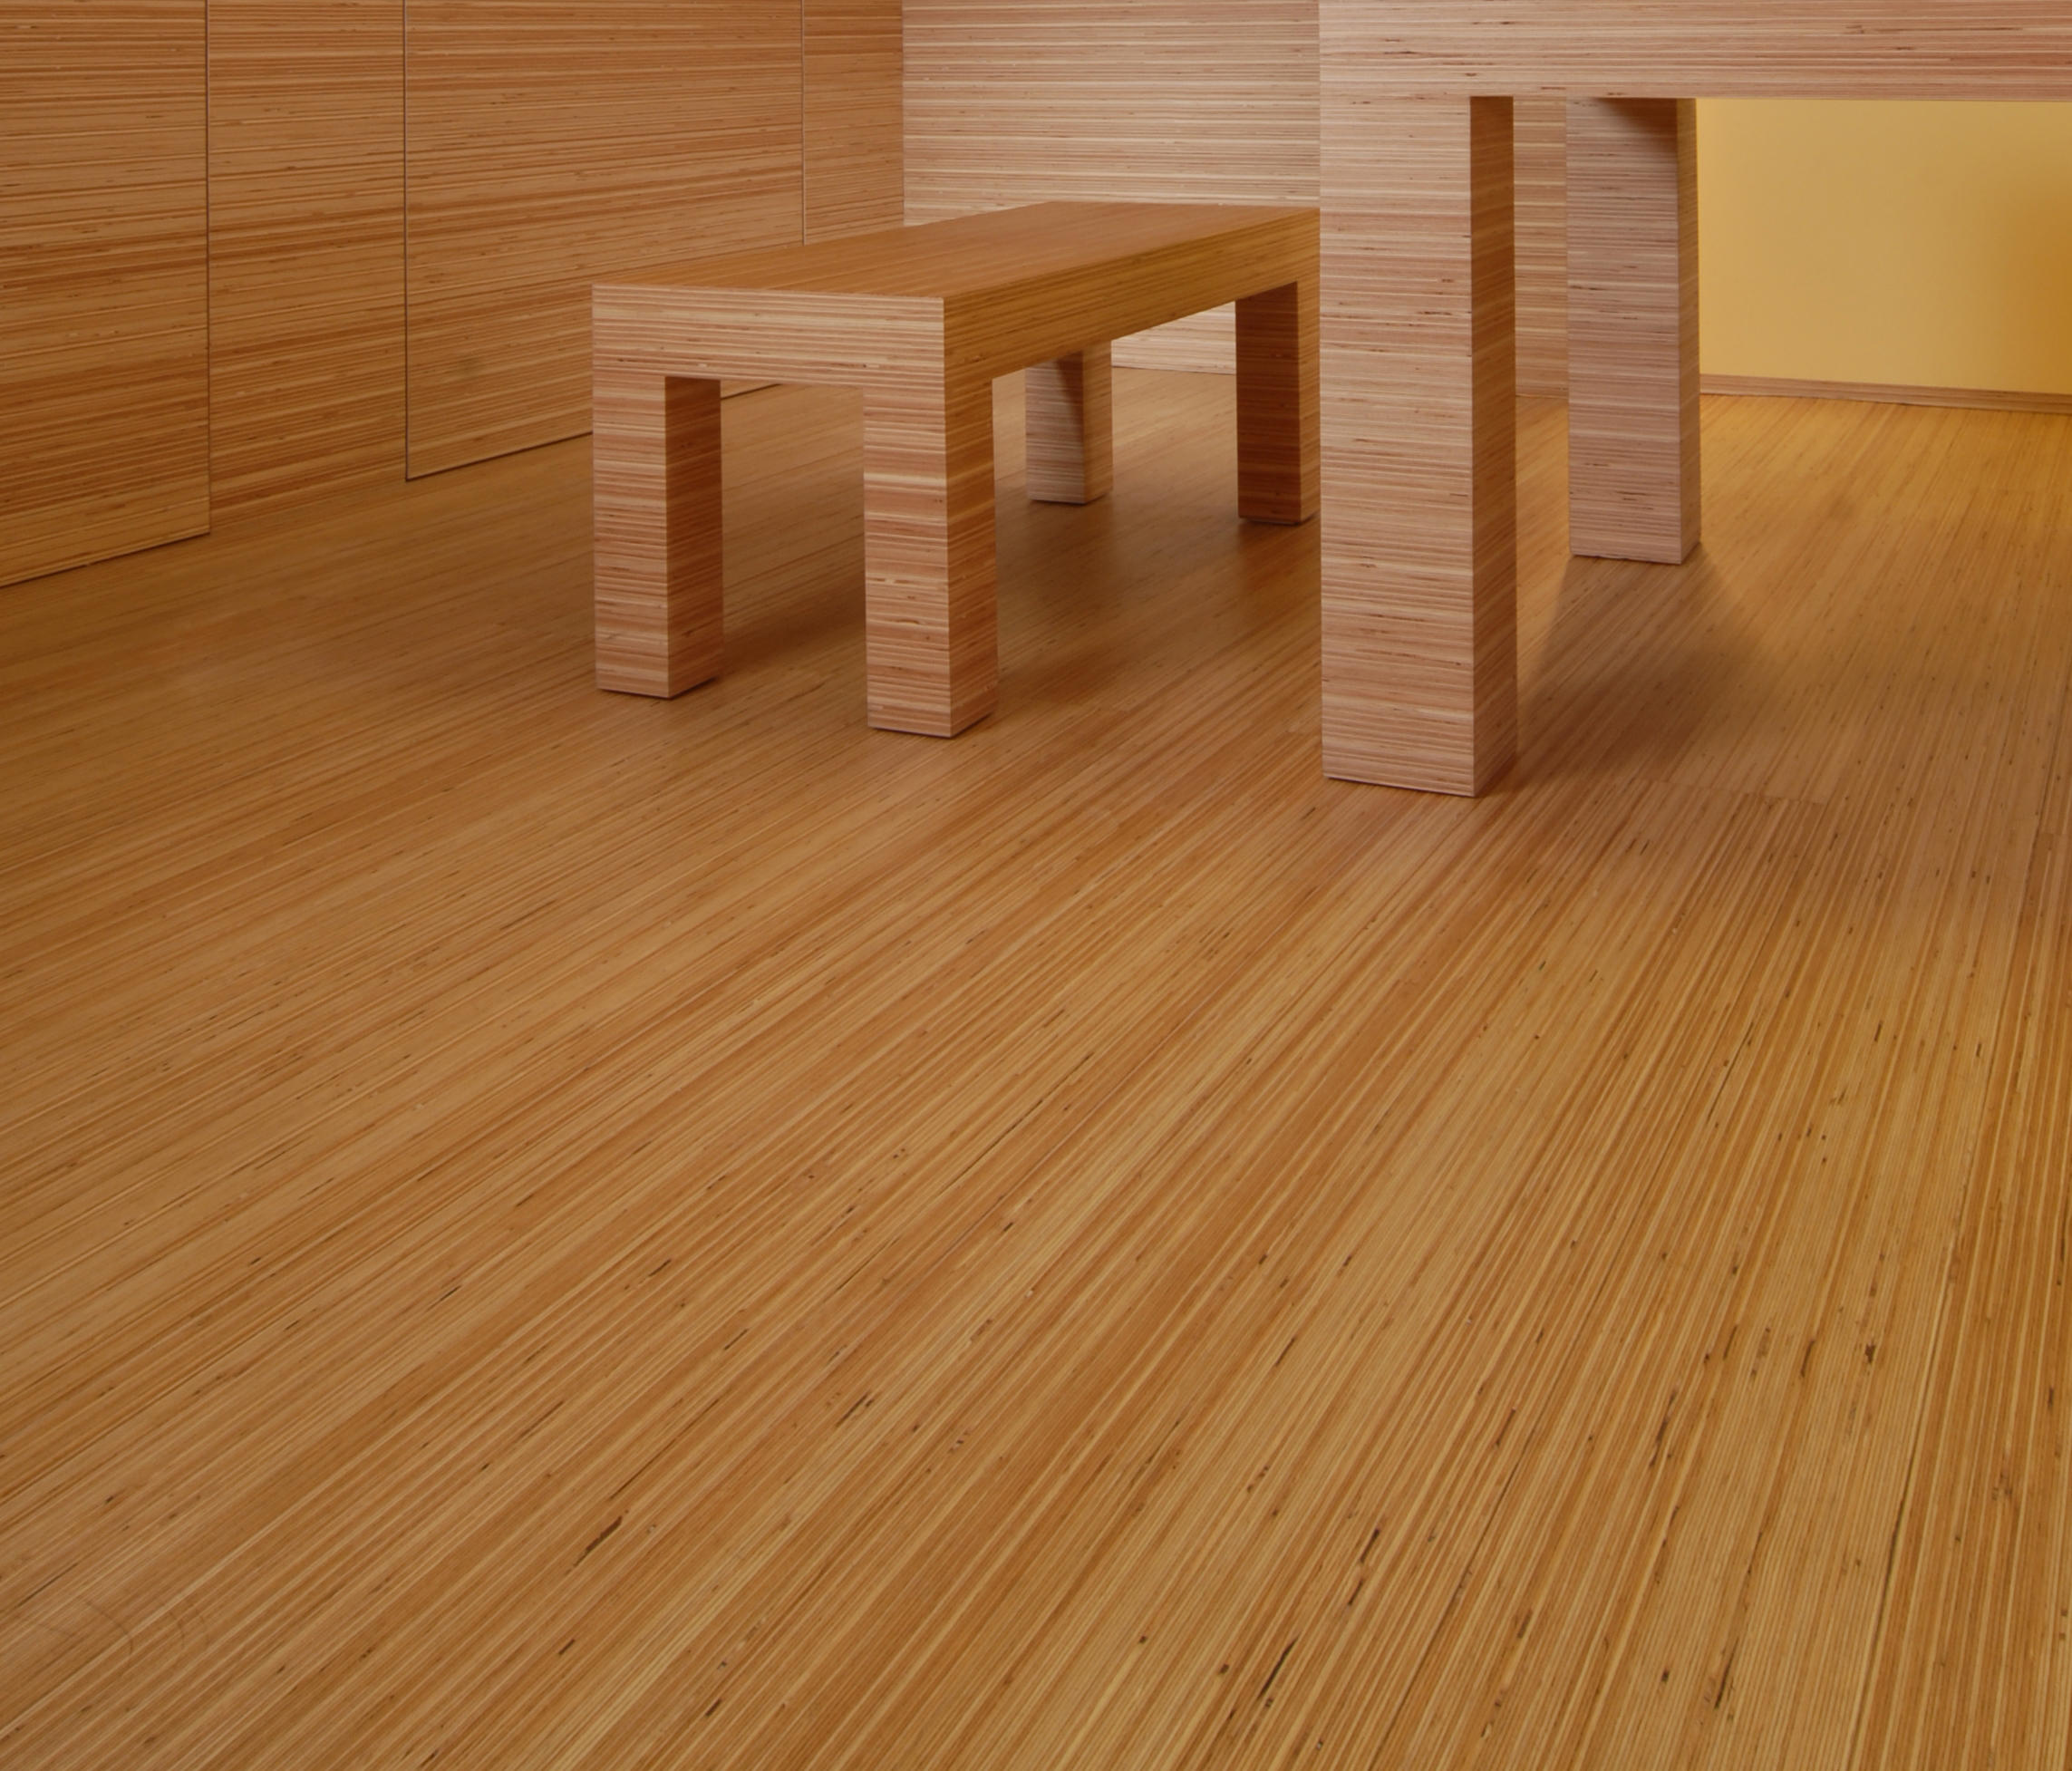 svl tongue and groove floor wood flooring from woodtrade architonic